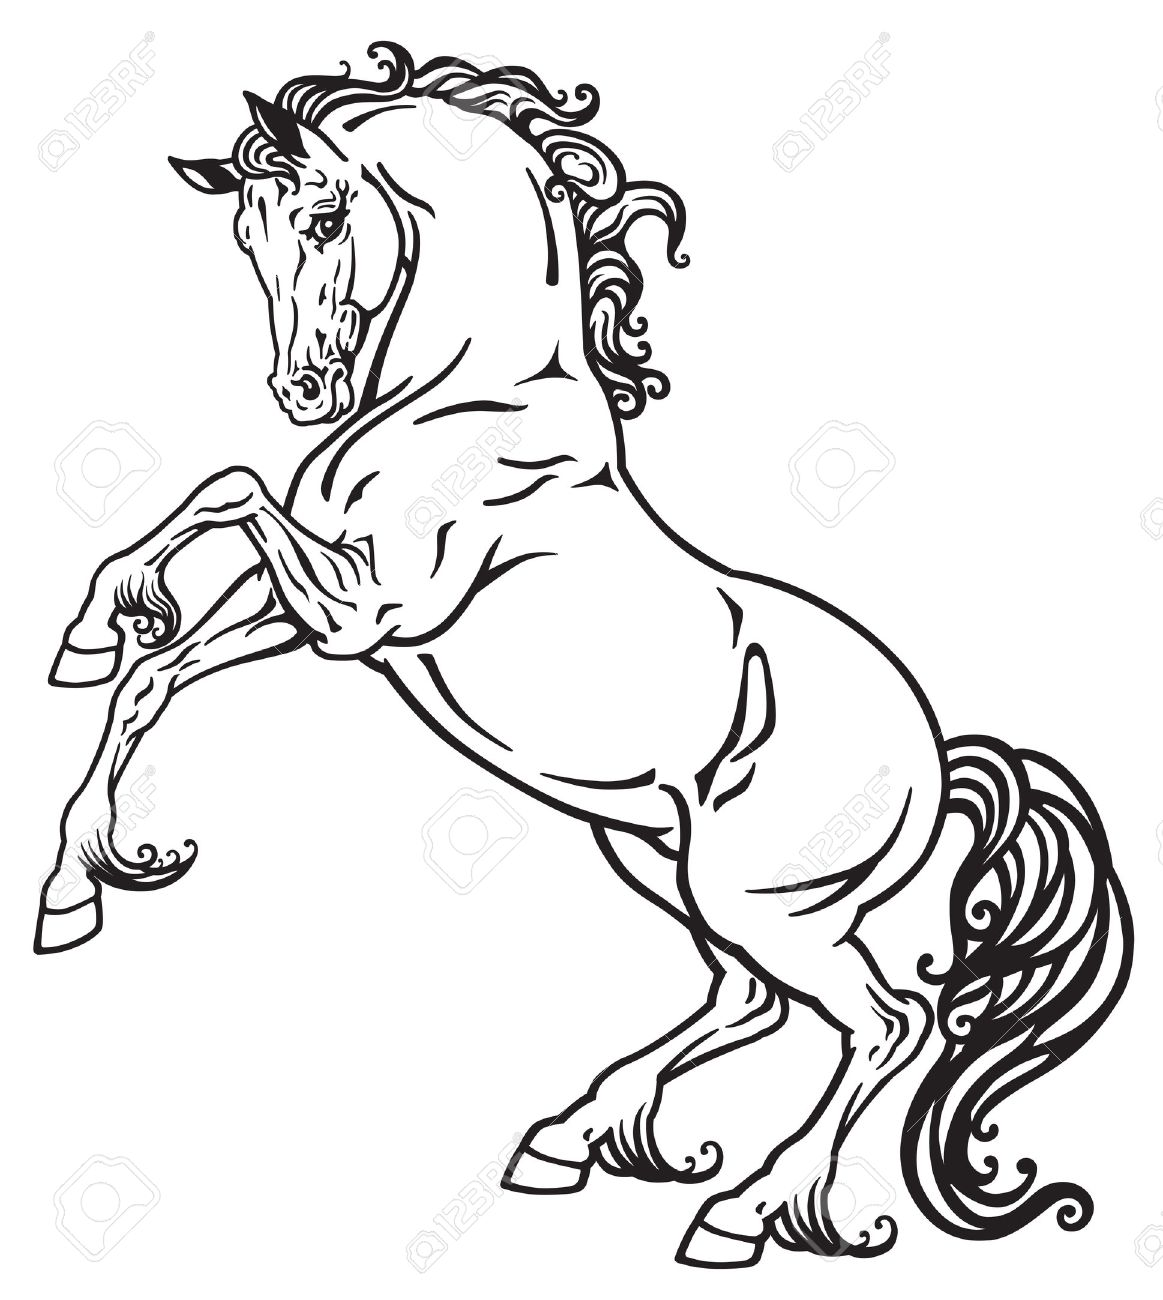 1163x1300 Rearing Horse Black And White Outline Image Royalty Free Cliparts